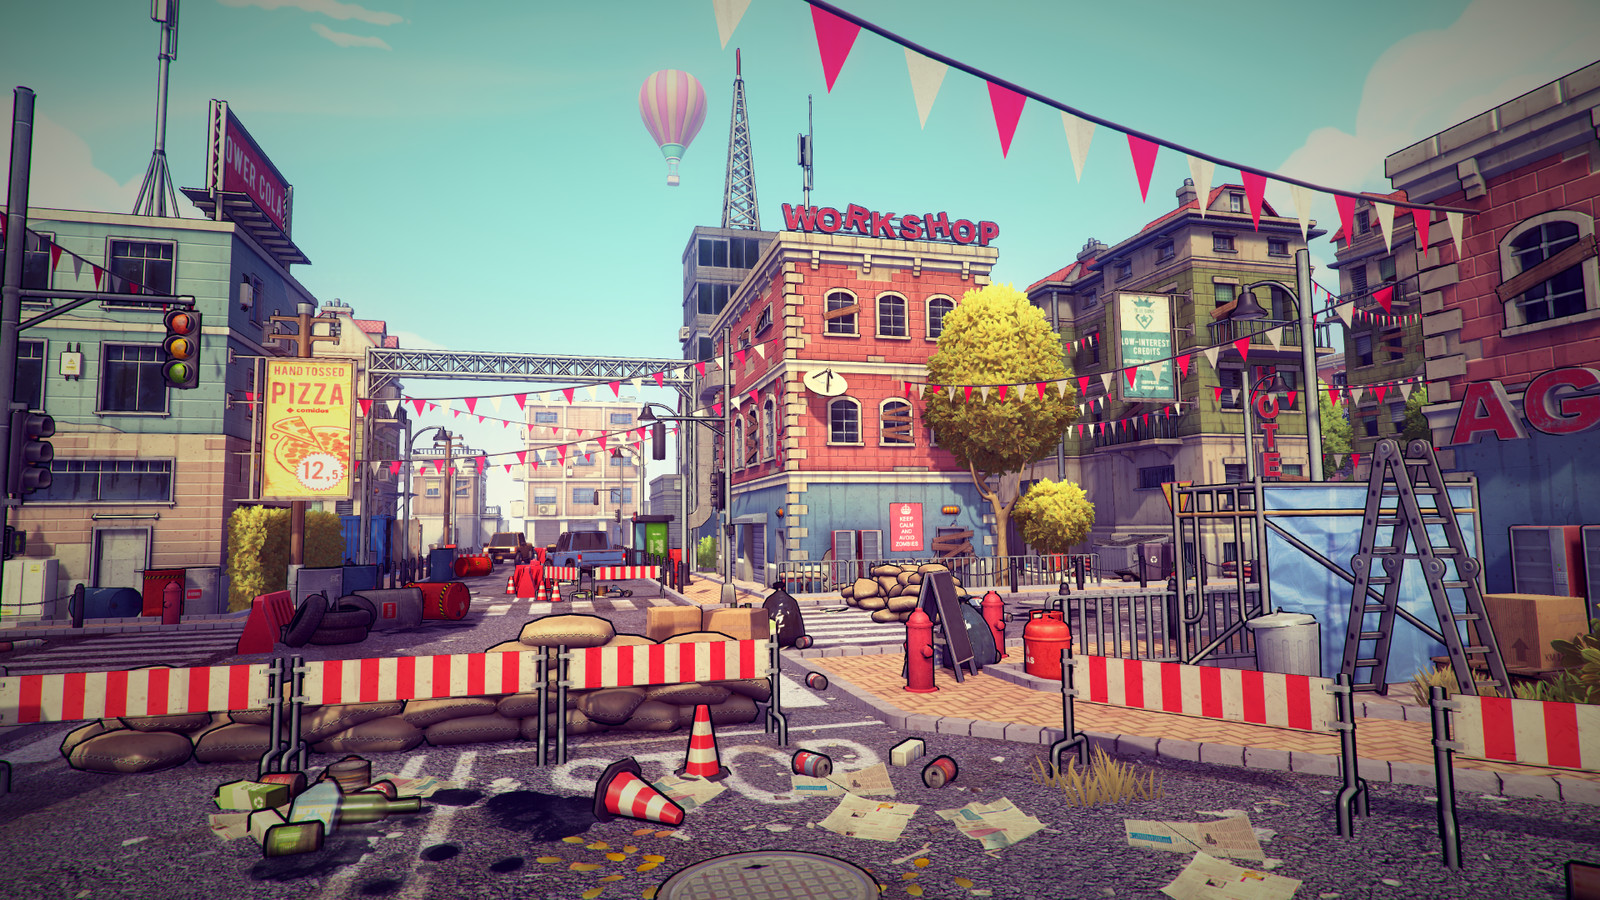 Post-Apo Cartoon City Pack - Unity 3d Game Asset Pack